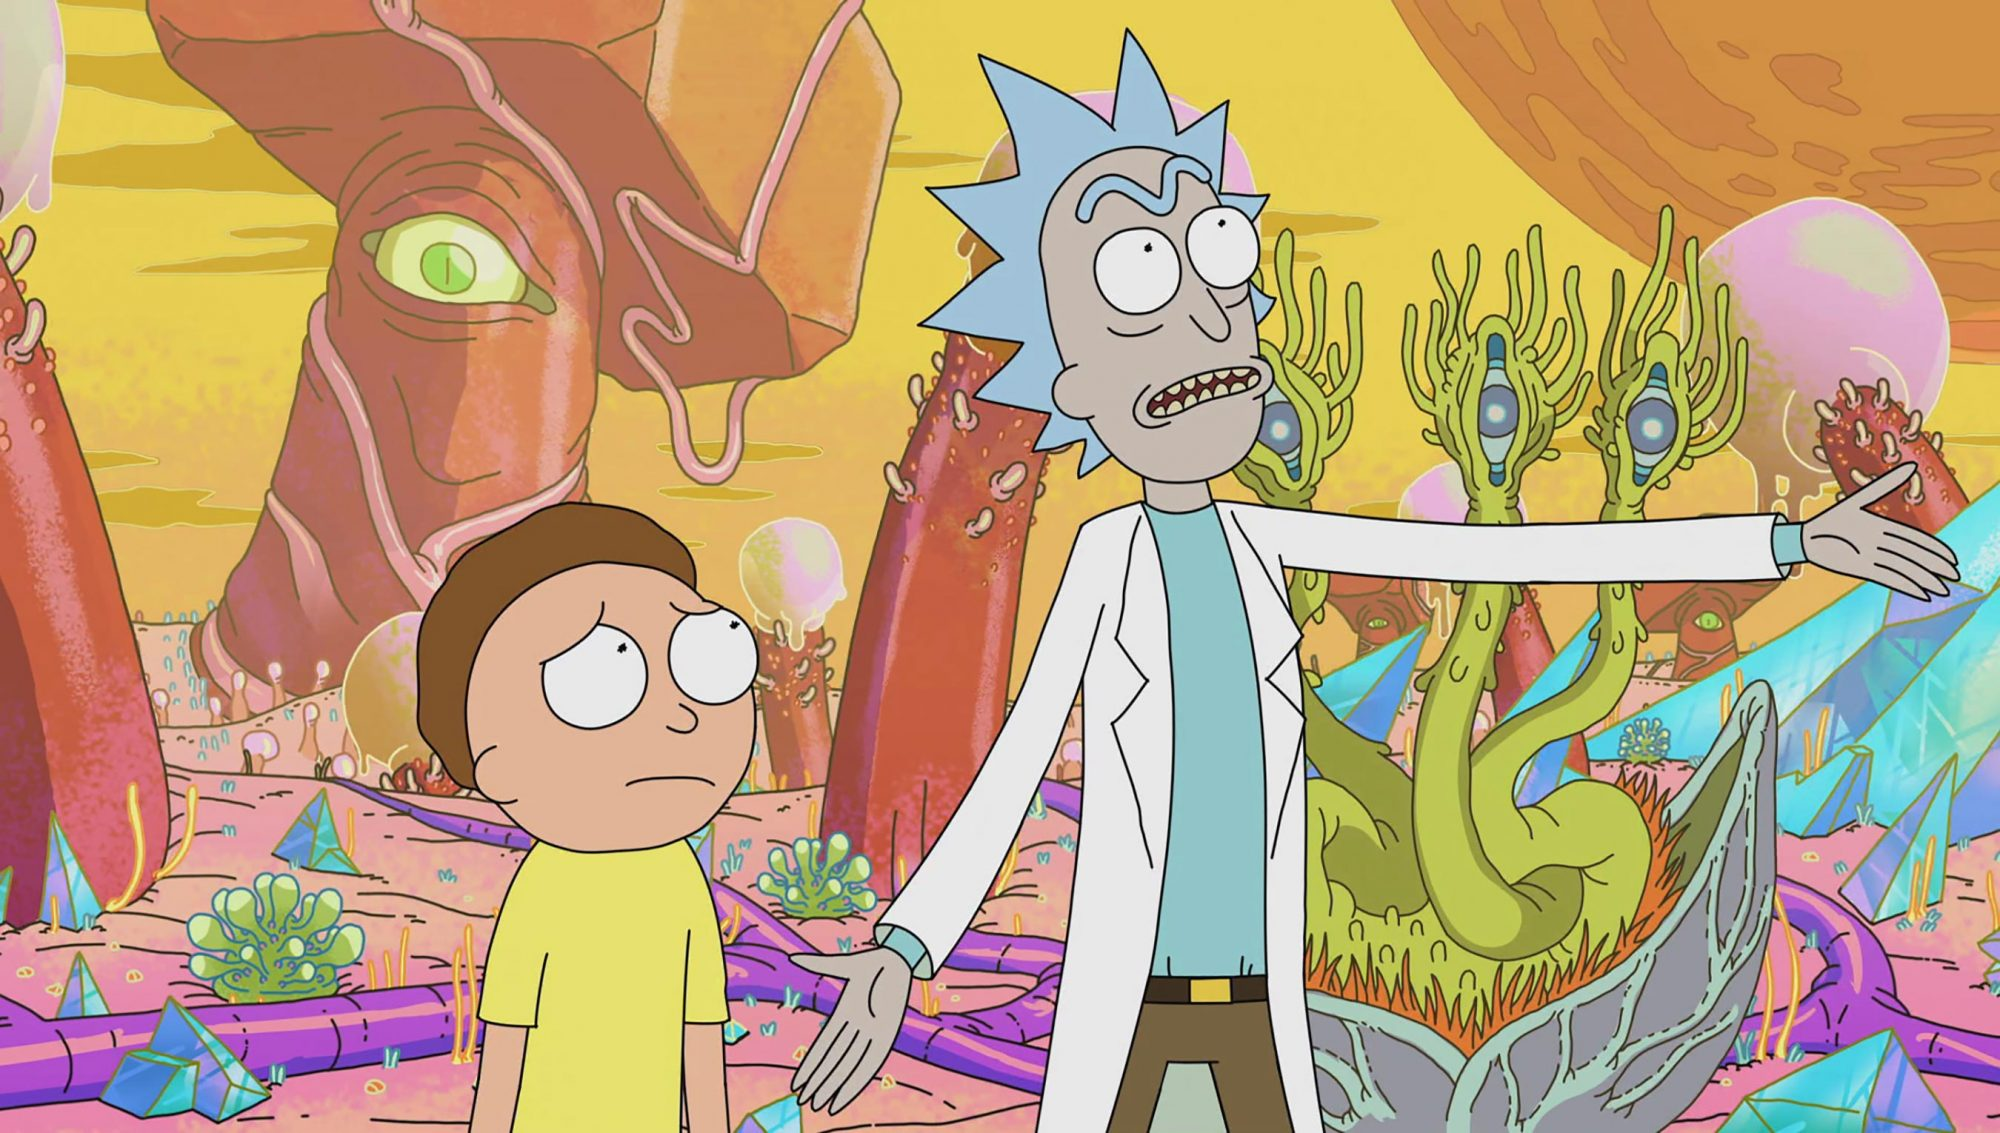 Ricky and Morty - Dimension 35C (Season 1, Episode 1)